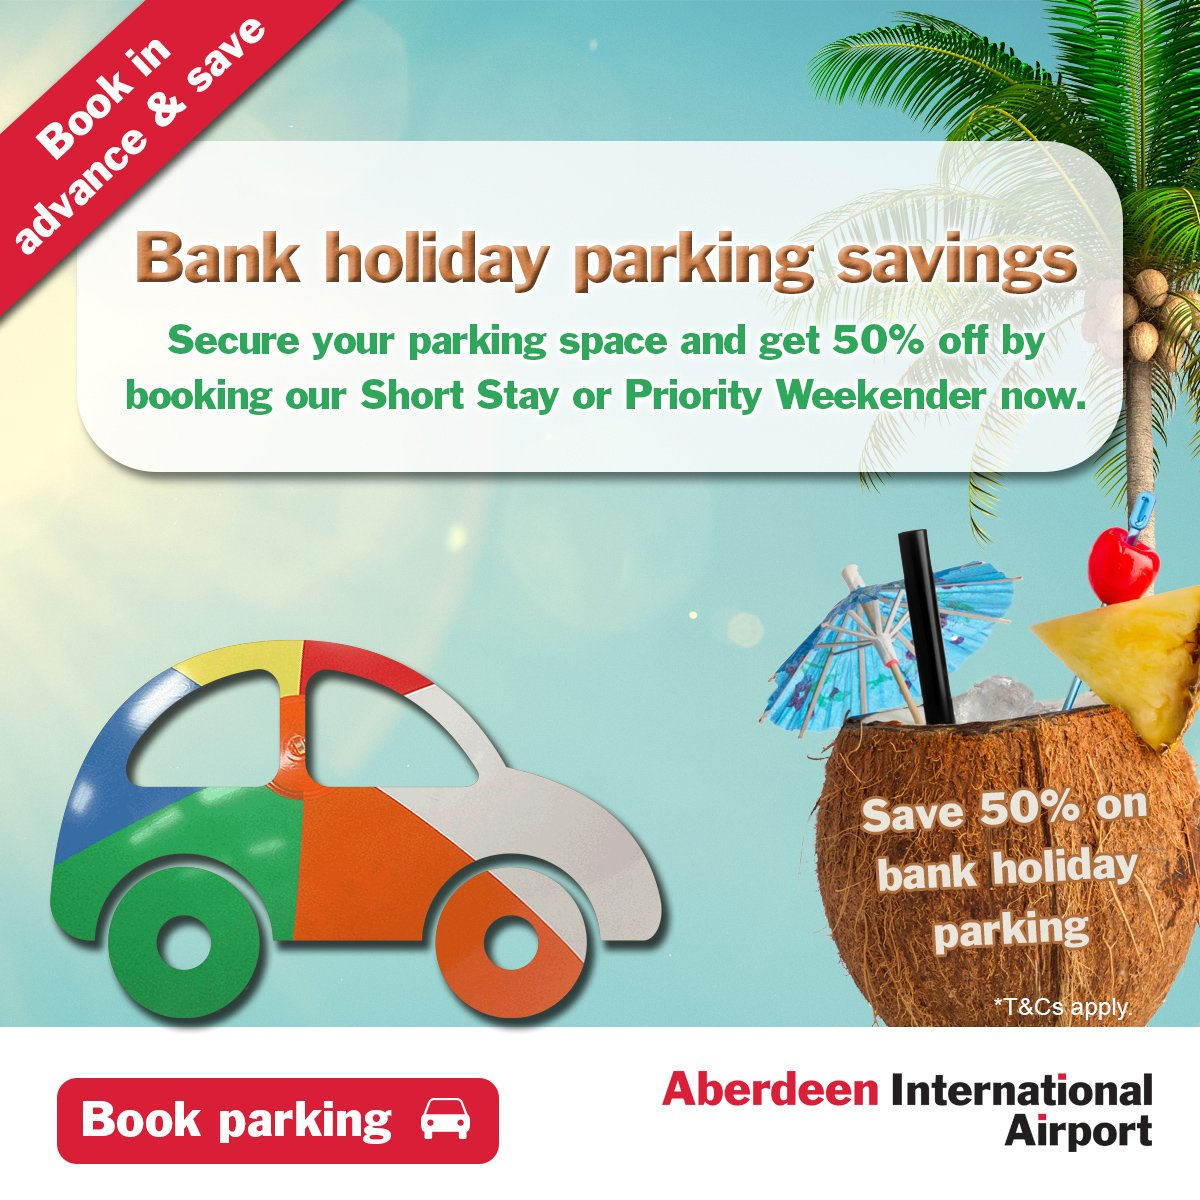 Flying this bank holiday weekend? Secure a space & save up to 50% on Short Stay or Priority: